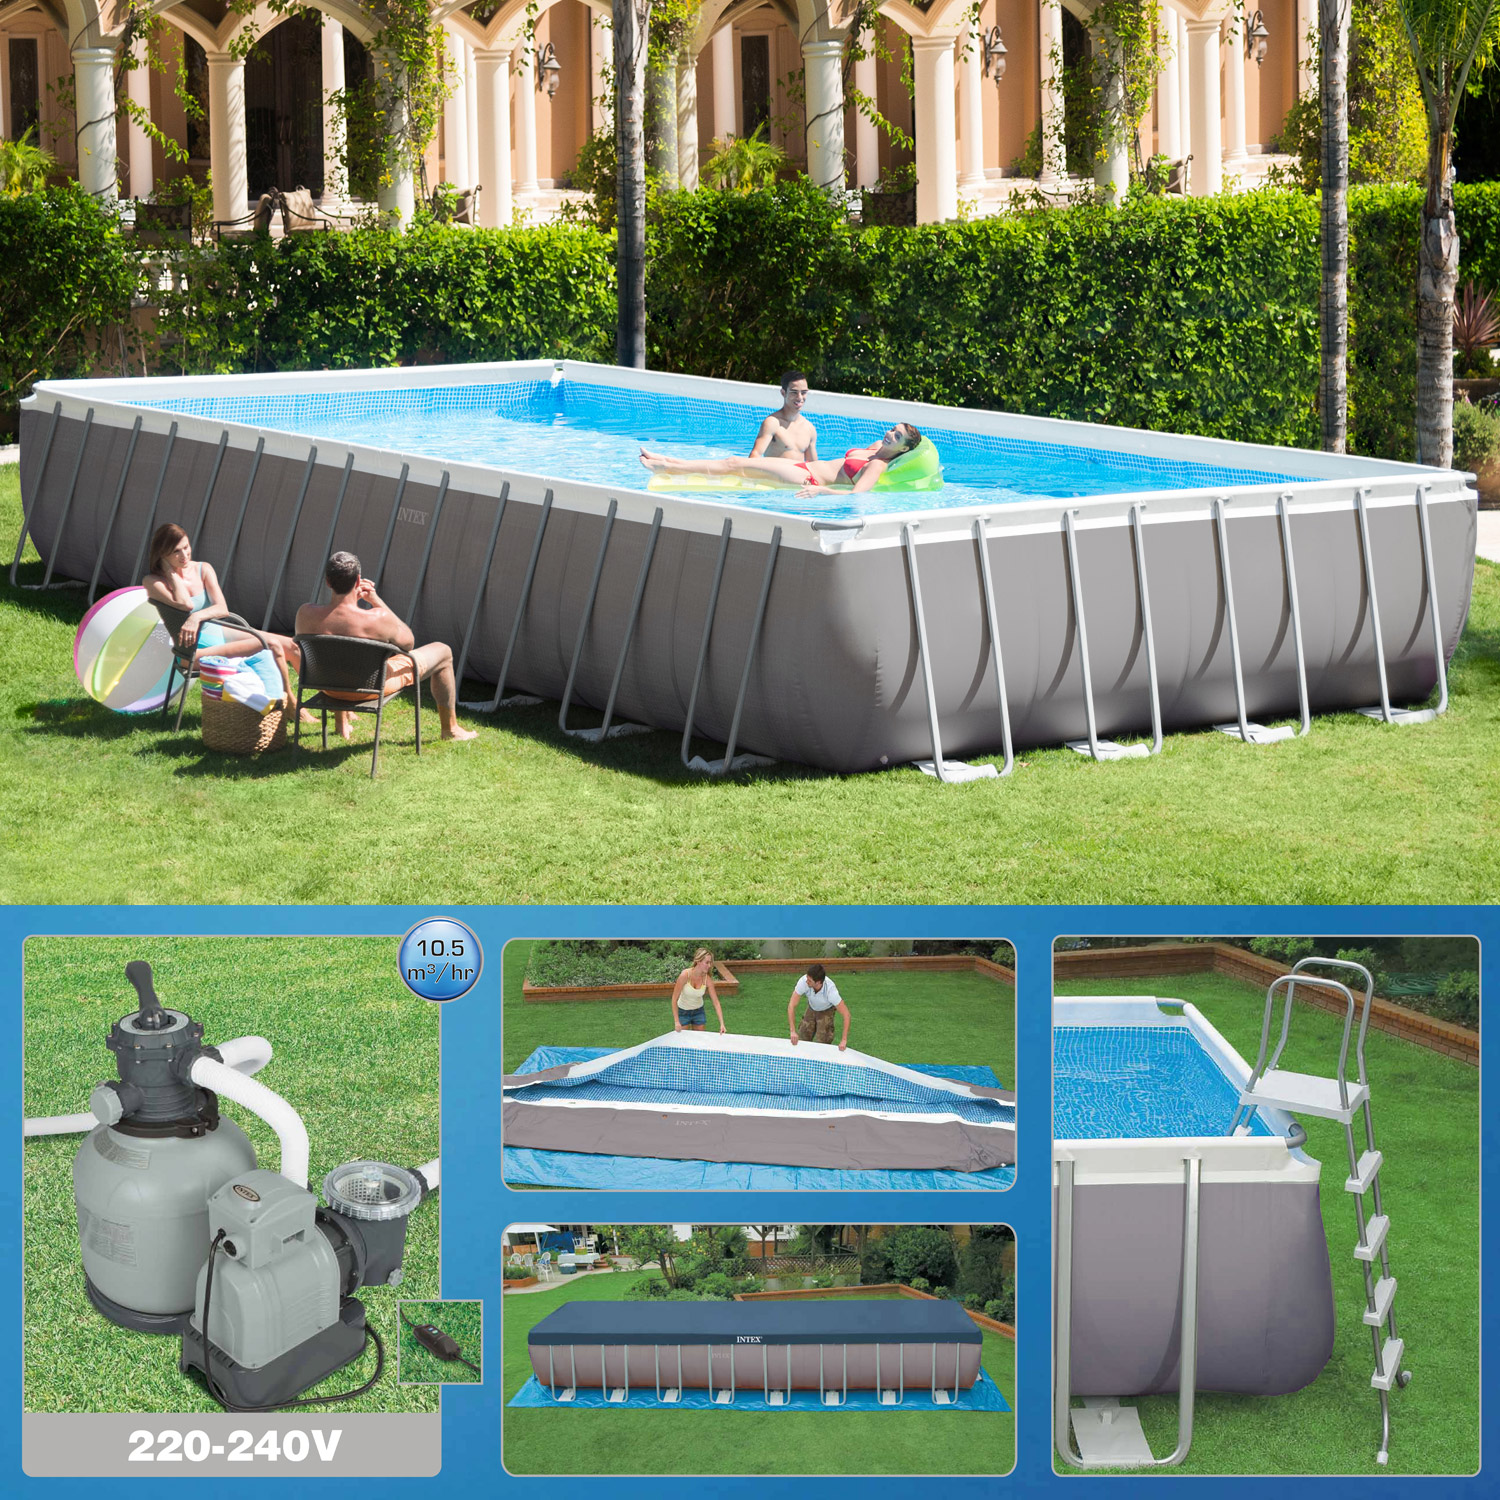 Pool Komplettset Intex Intex 975 X 488 X 132cm Swimming Pool Rechteck Stahlwand